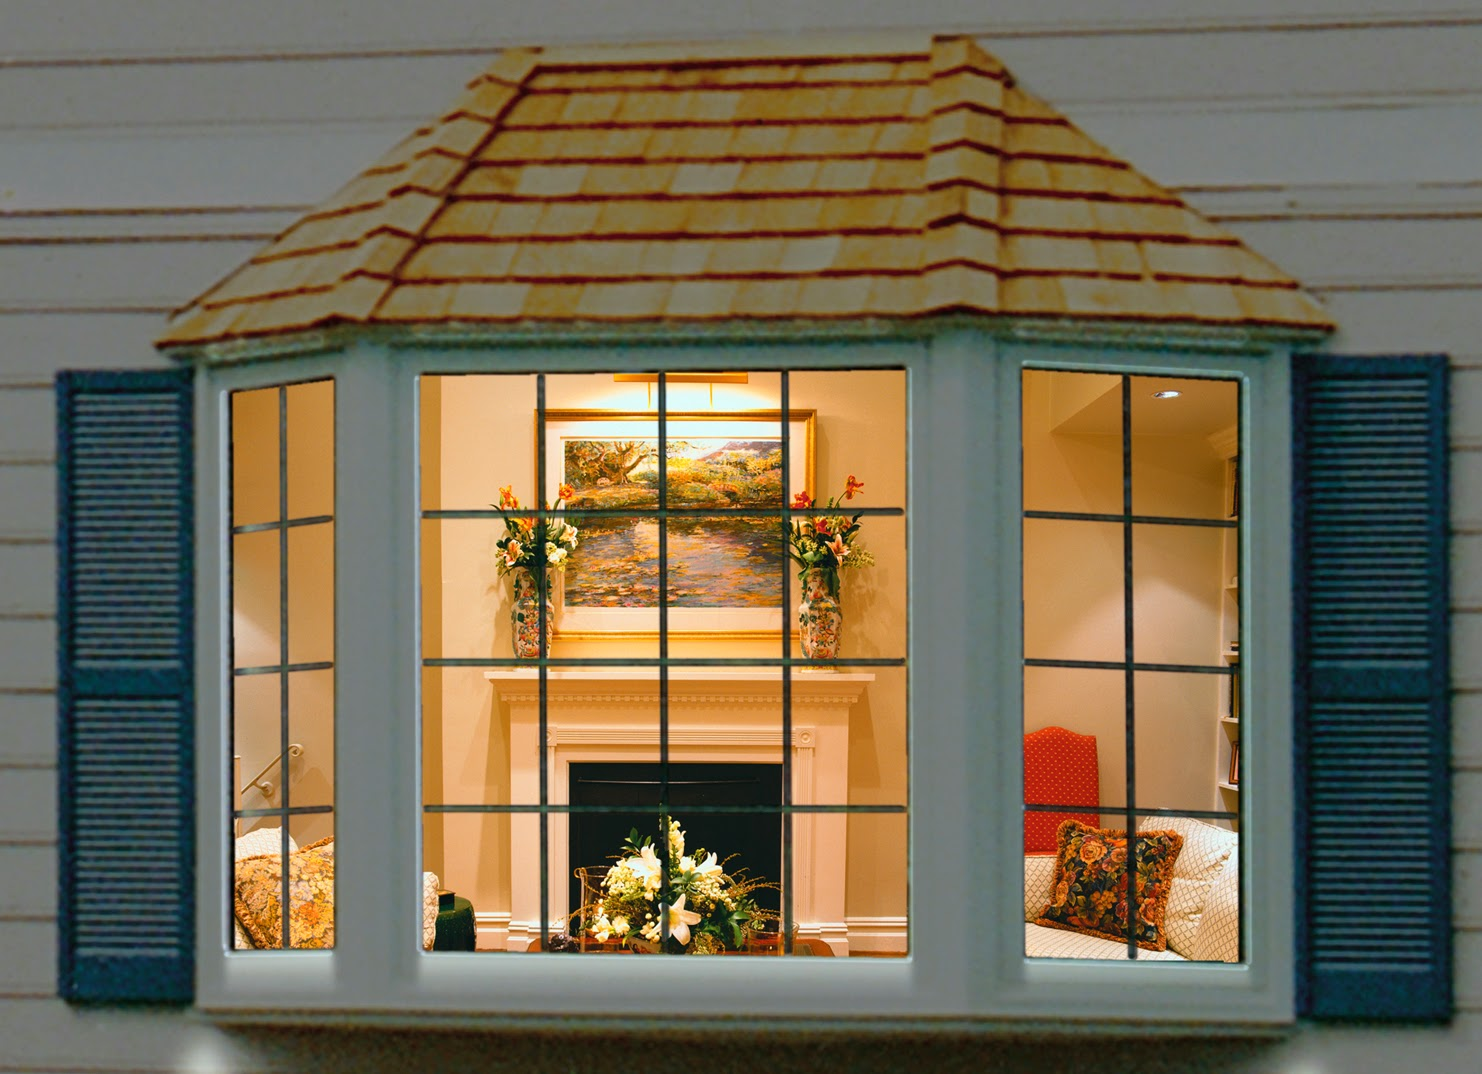 MOST BEAUTIFUL WINDOW HOUSE DESIGNS